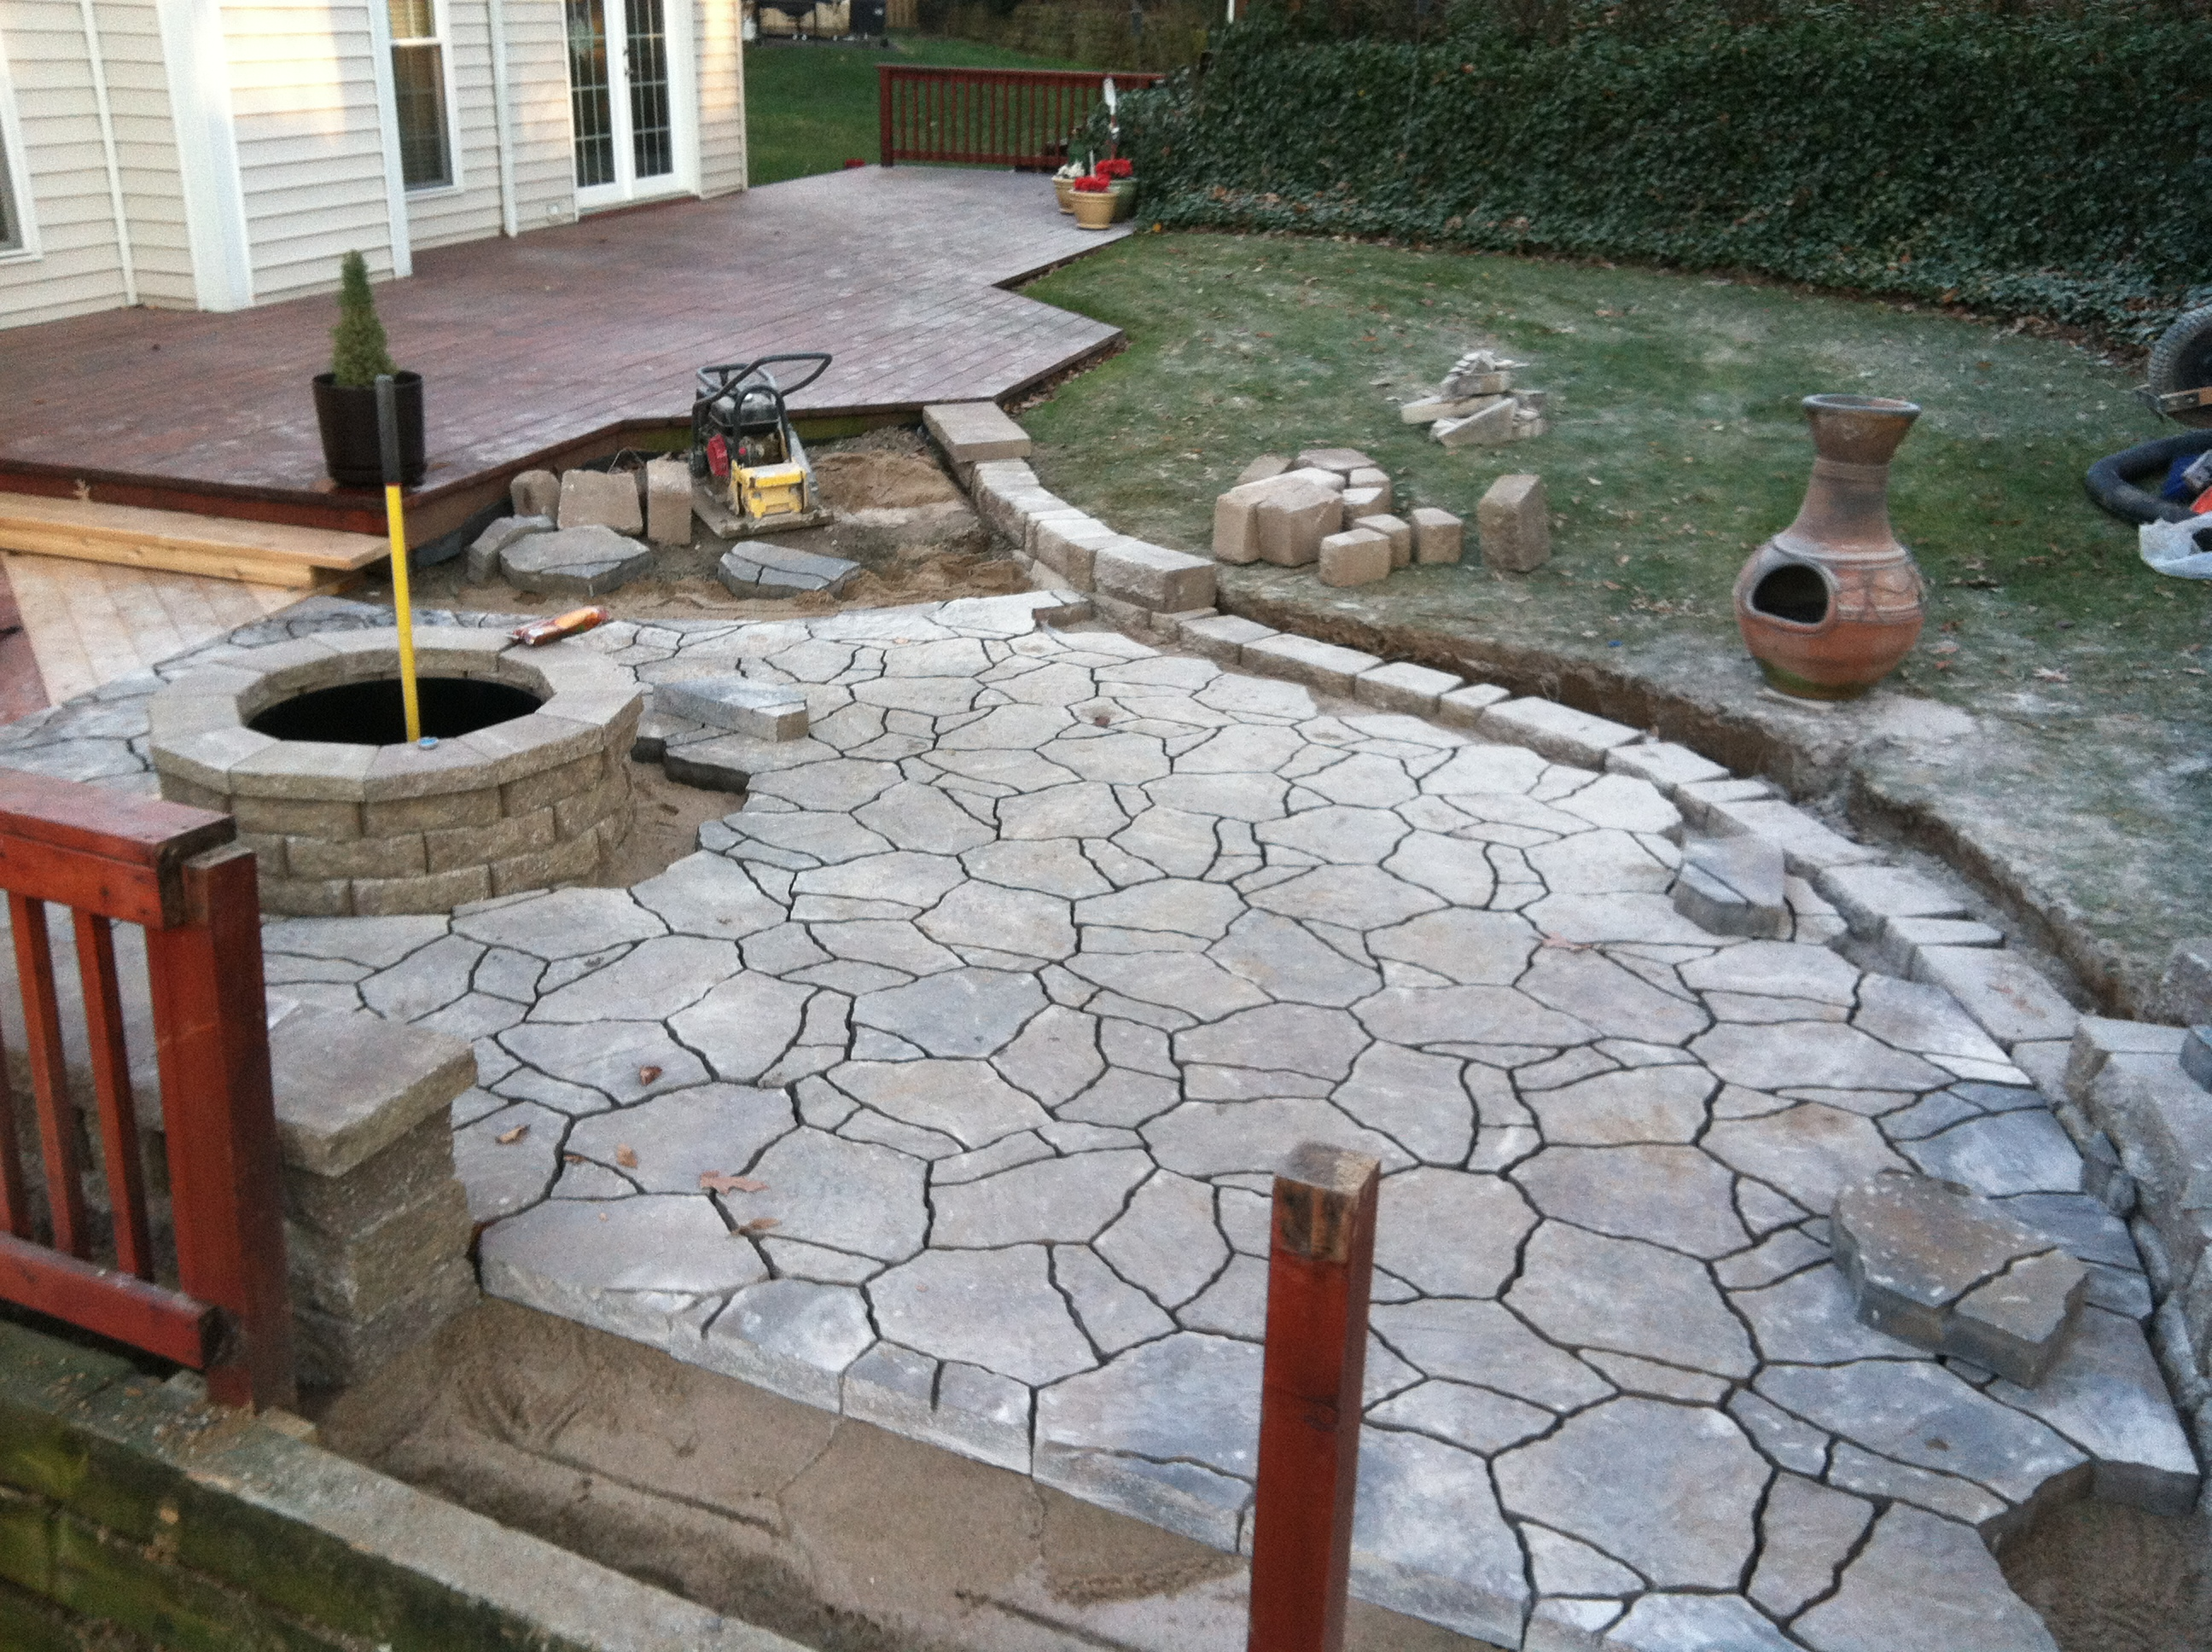 St Louis Patio Design & Constuction